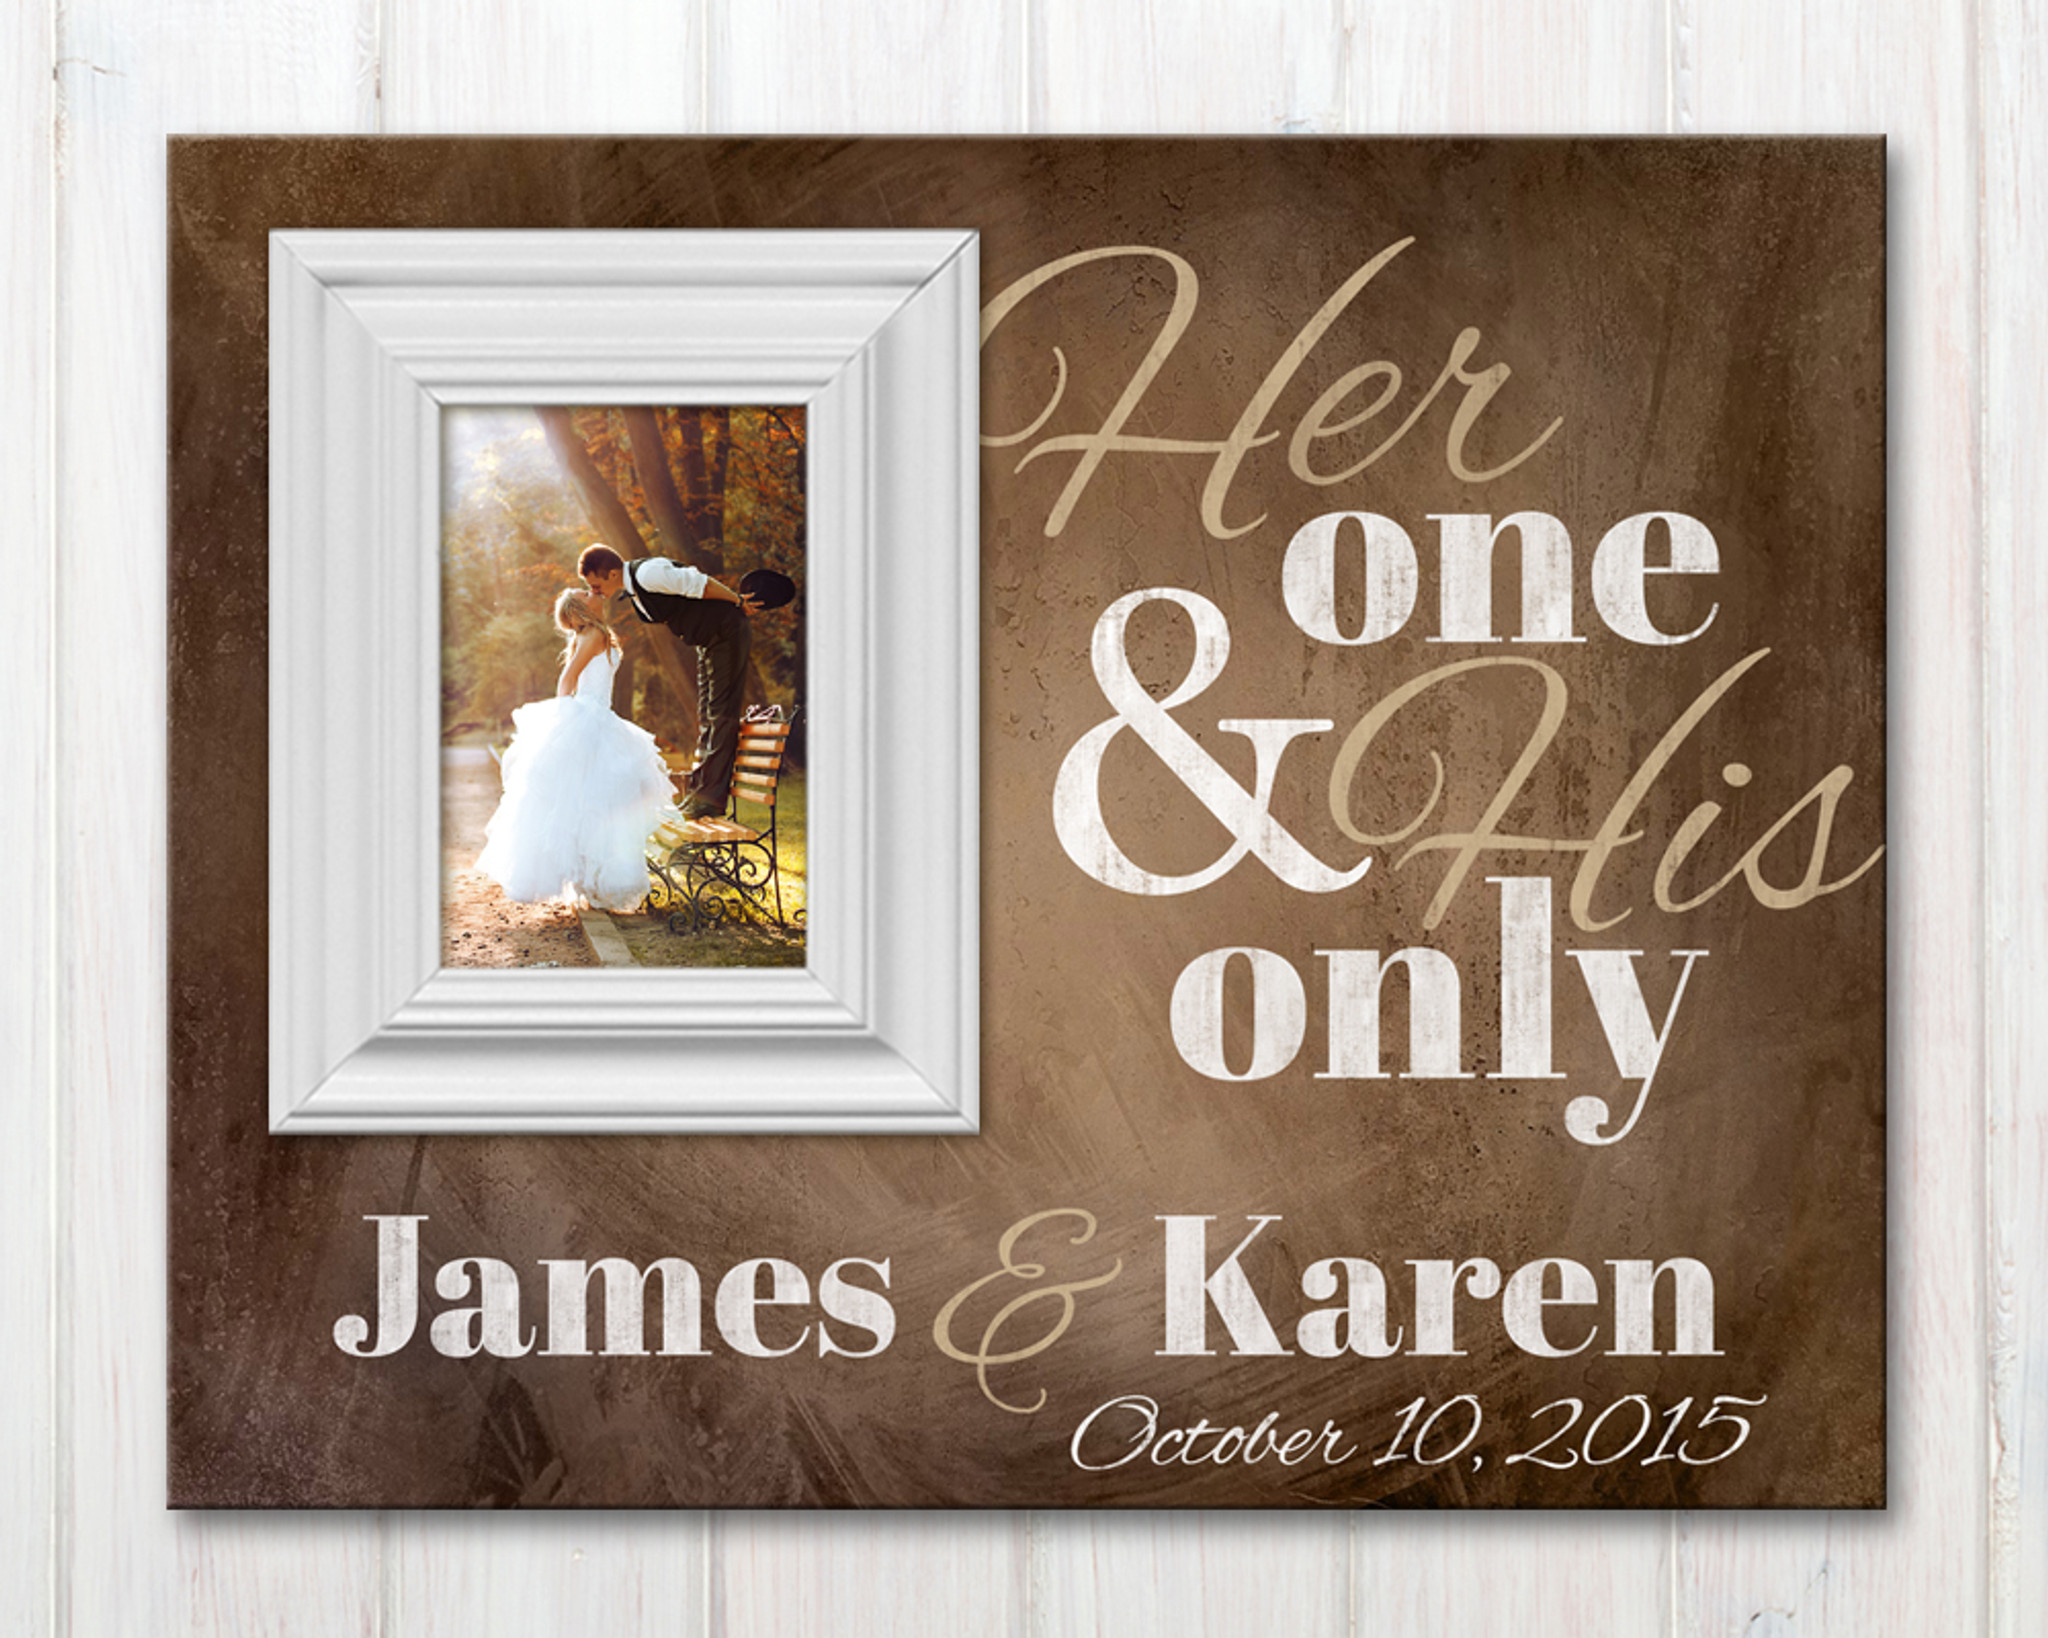 Personalized Picture Frame With Established Date Her One And His Only